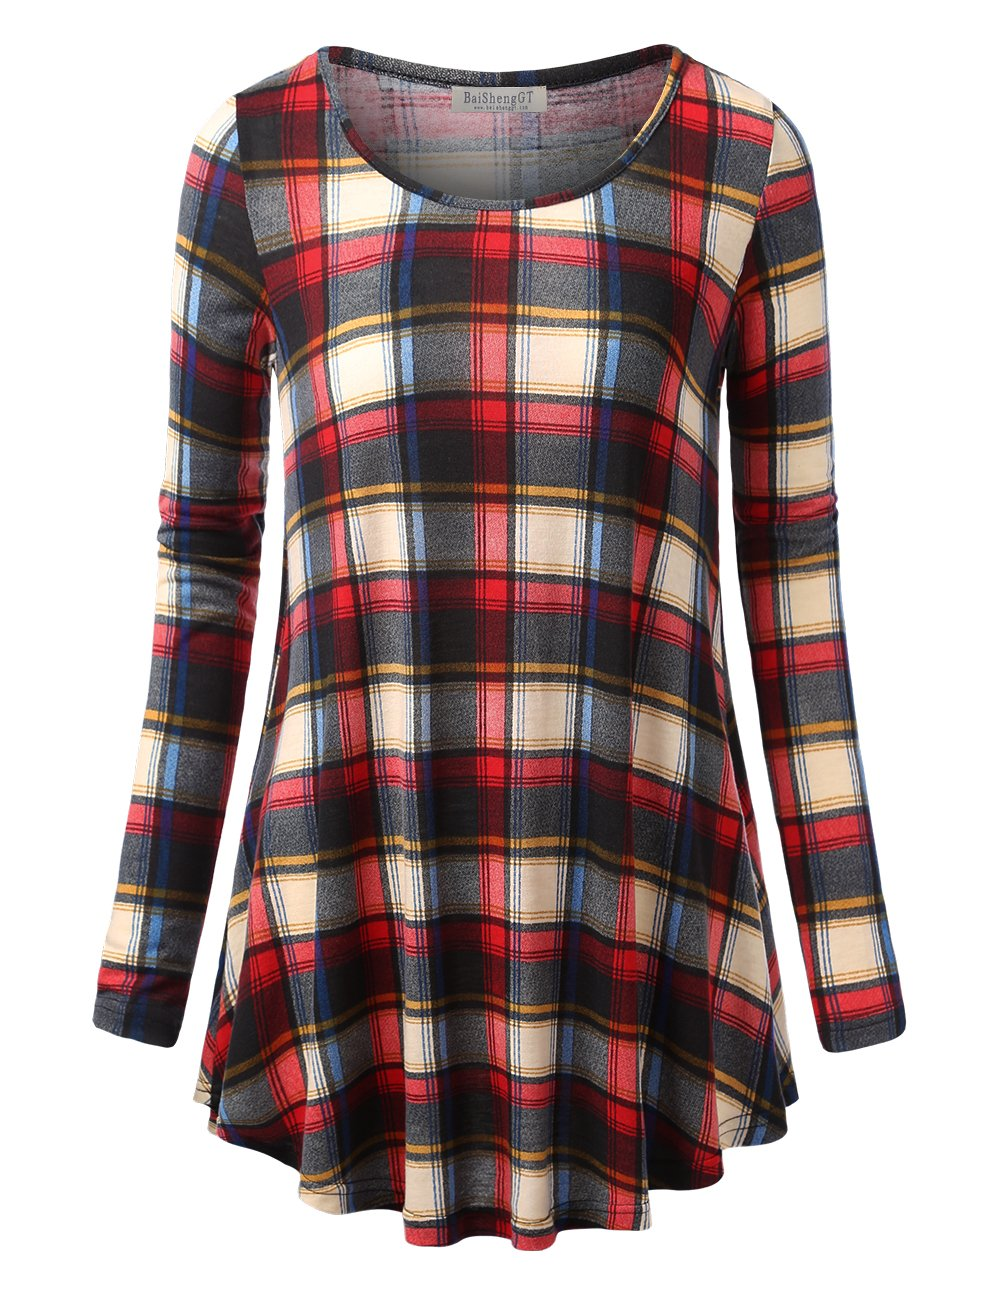 BaiShengGT Women's Round Neck Printed Loose Fit Casual Blouse Top Tunic Shirt Red #1 XXL